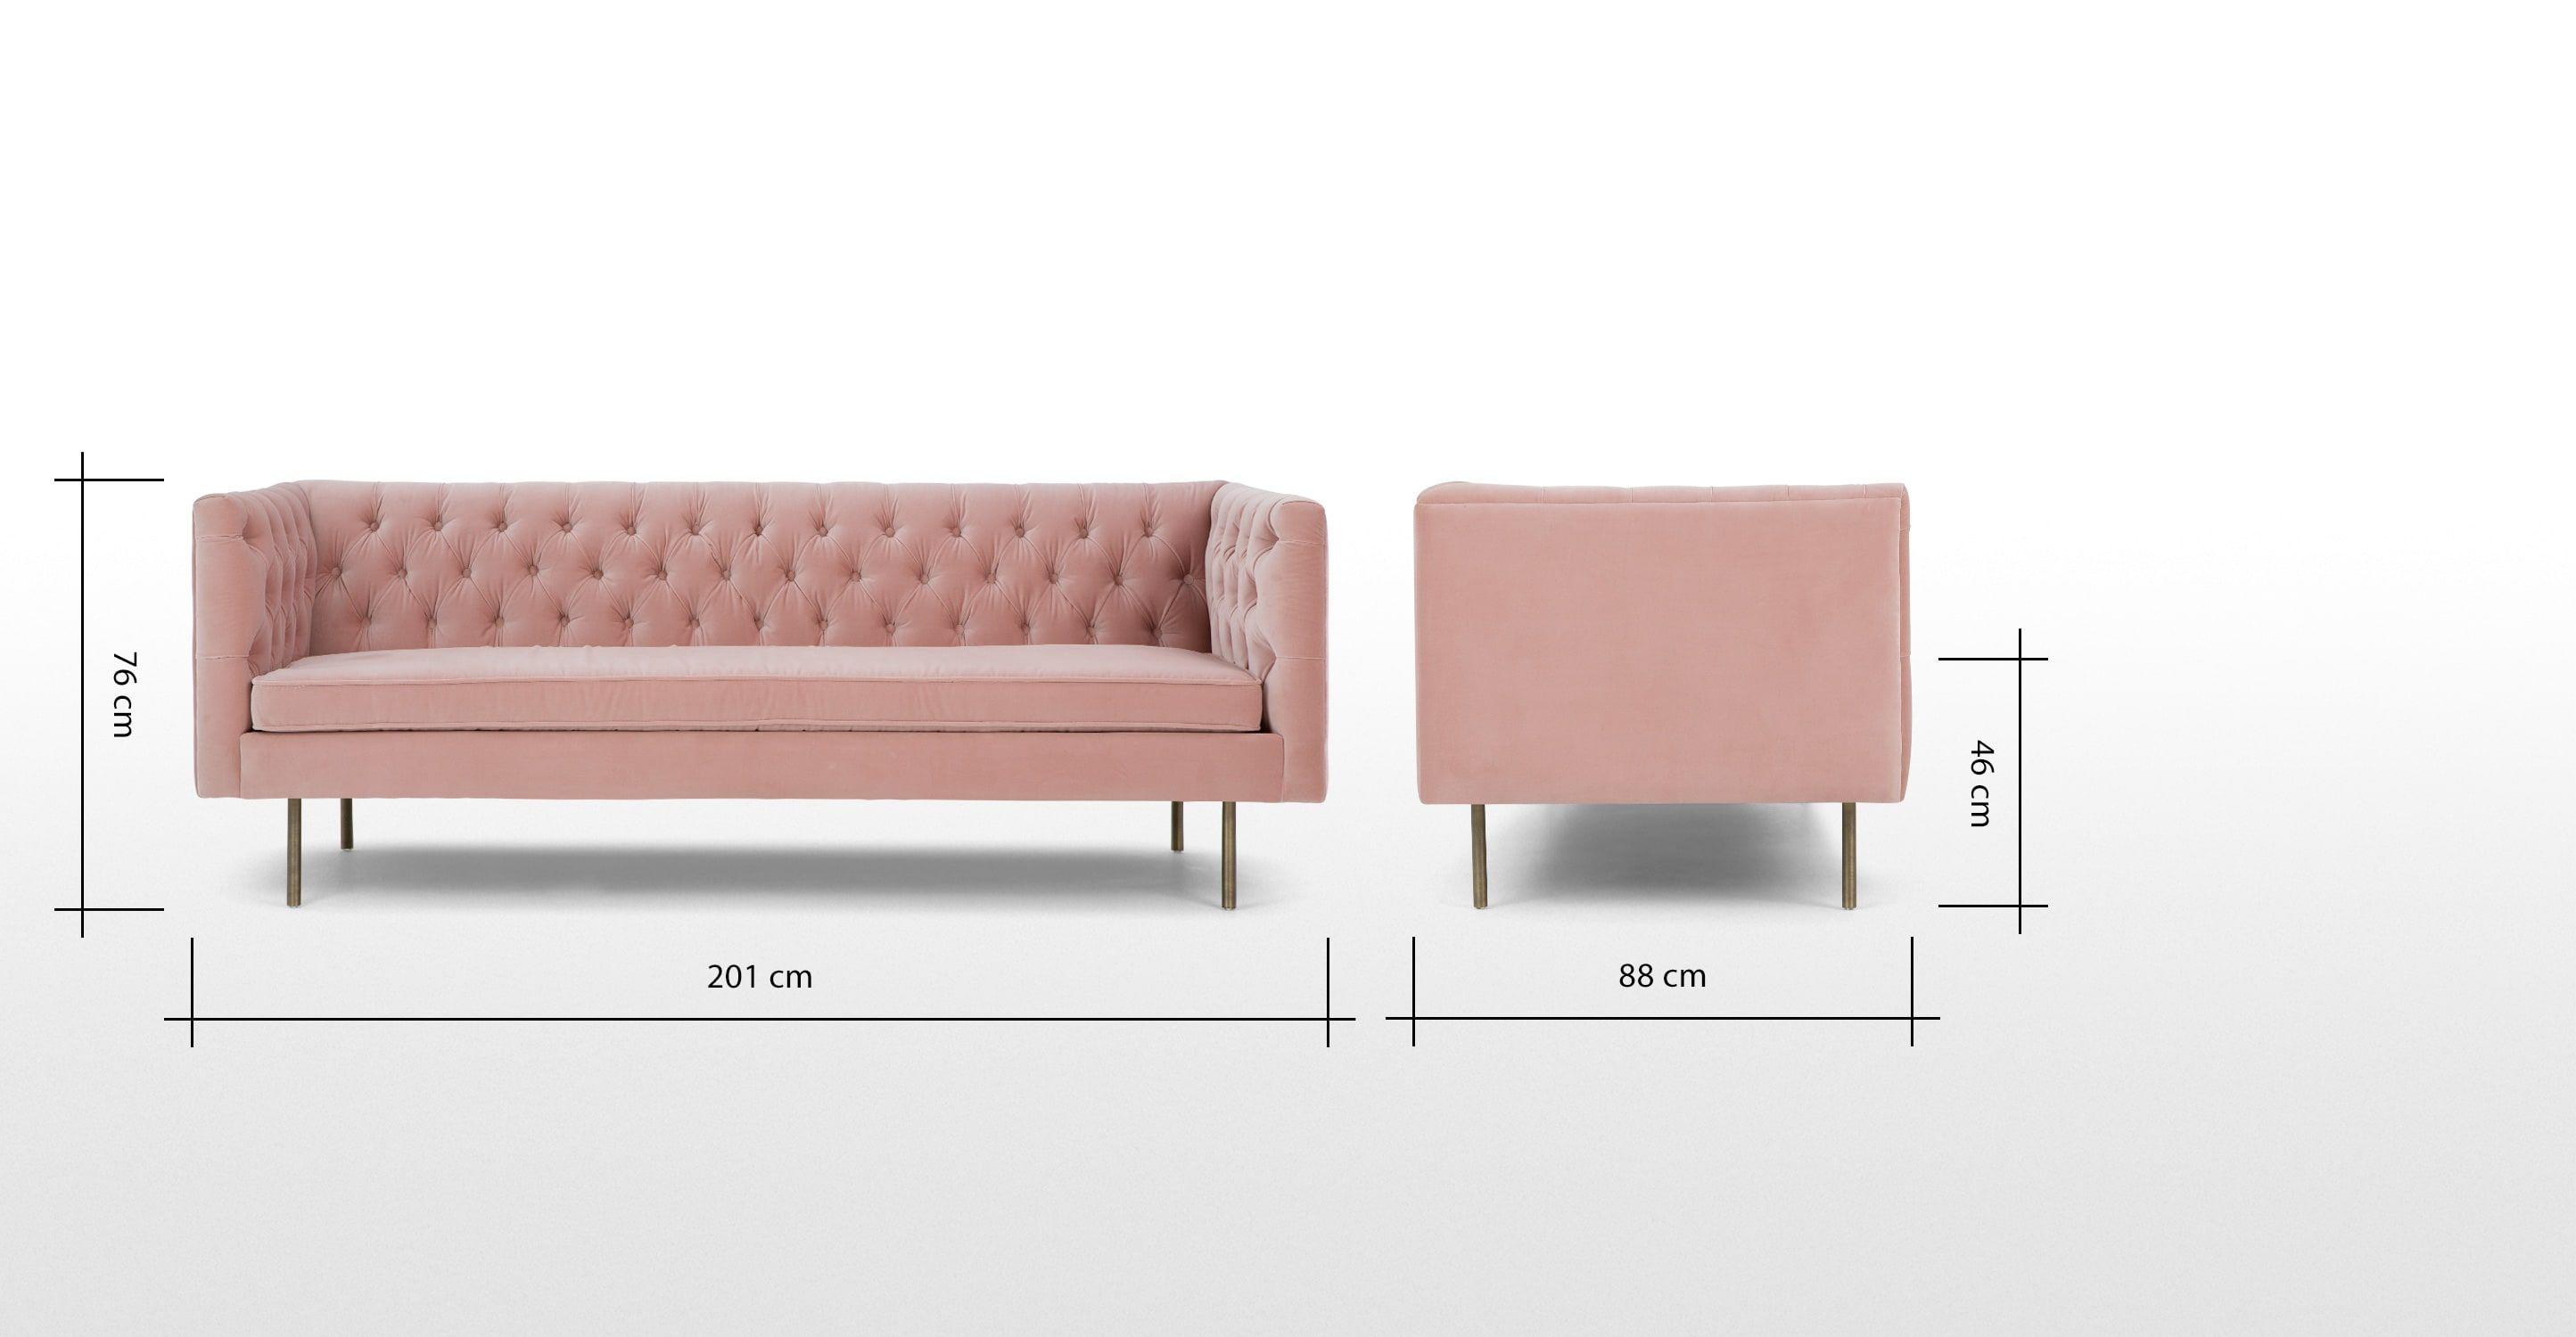 Julianne 3 Seater Sofa Blush Pink Cotton Velvet Pink Sofa Bed Pink Sofa Sofa Bed Uk